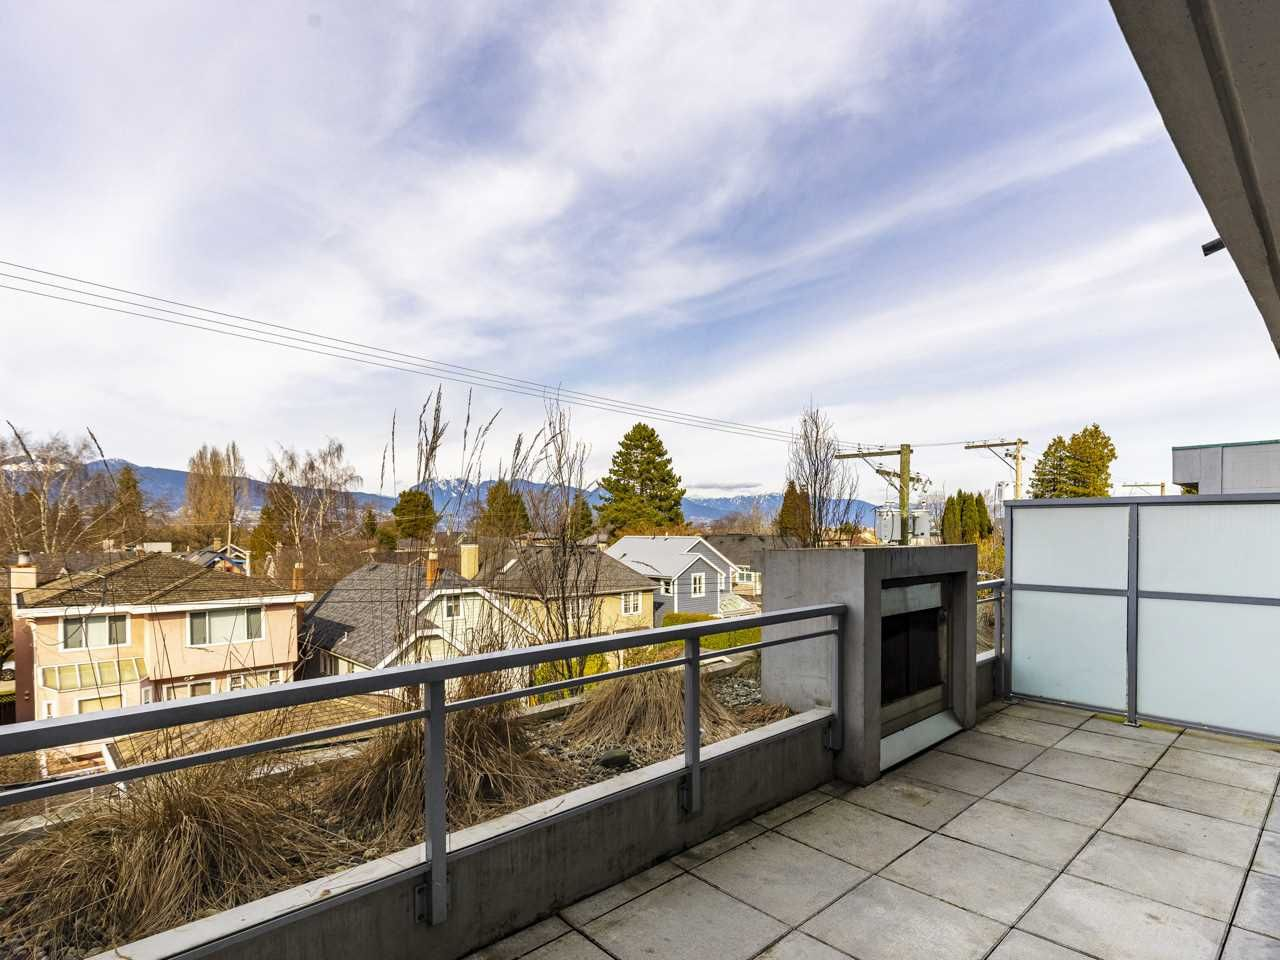 """Main Photo: 204 4375 W 10TH Avenue in Vancouver: Point Grey Condo for sale in """"The Varsity"""" (Vancouver West)  : MLS®# R2552003"""